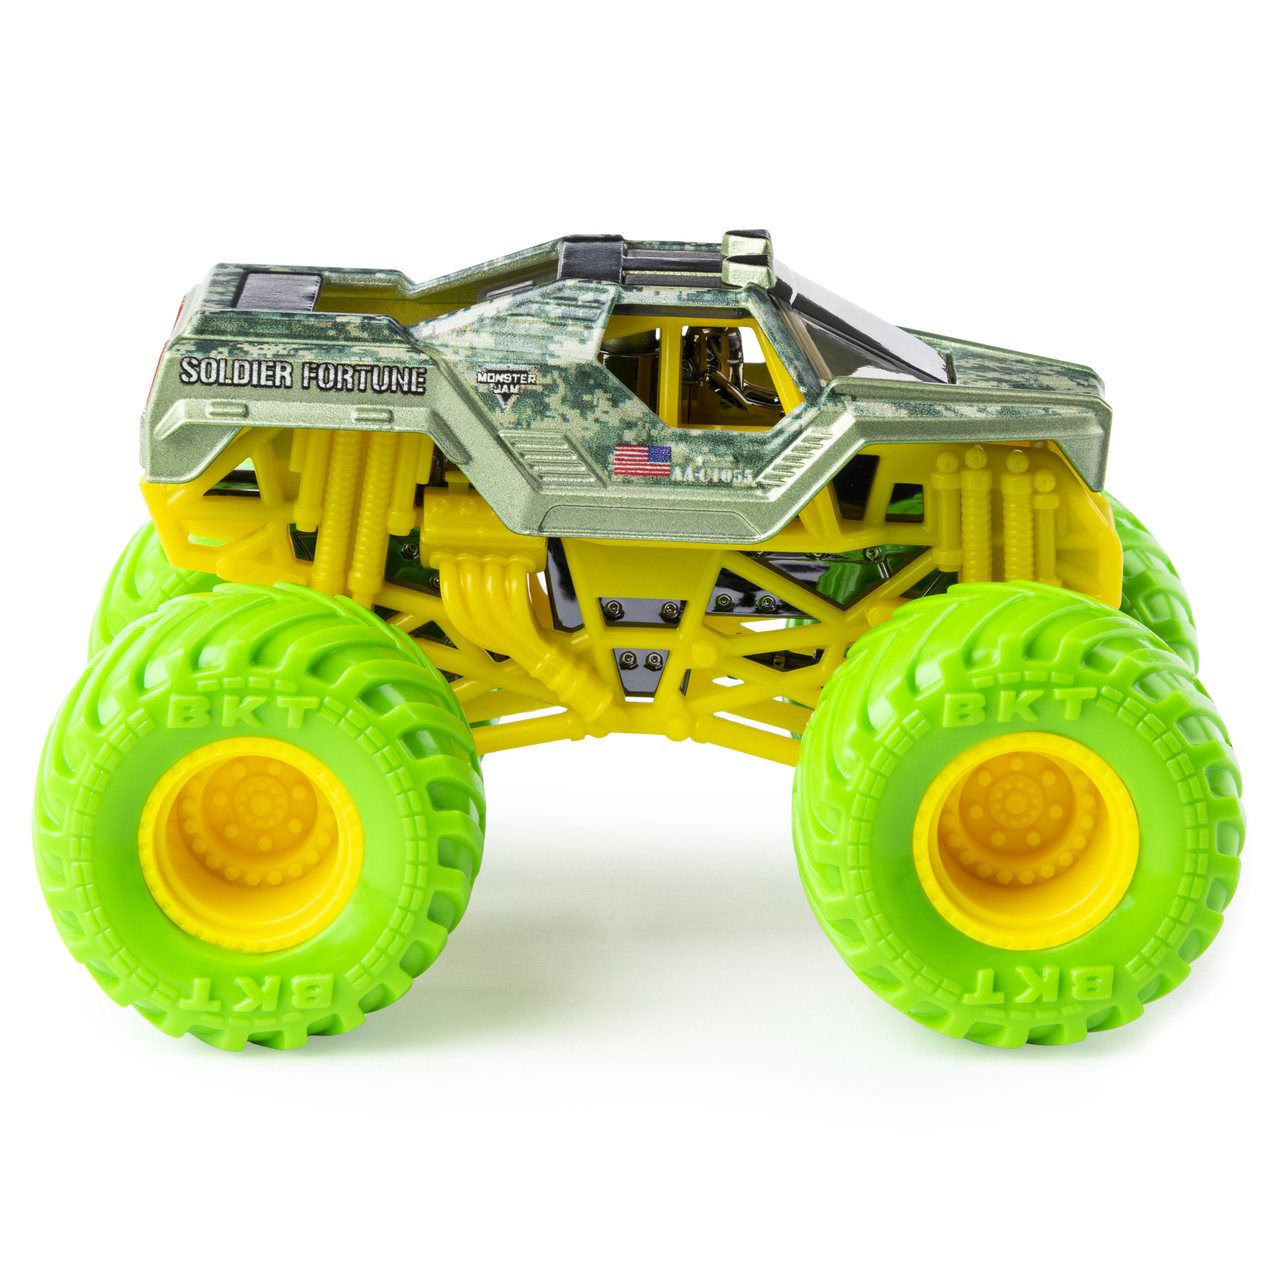 Monster Jam Truck - Soldier Fortune - Escala 1:64 - Original